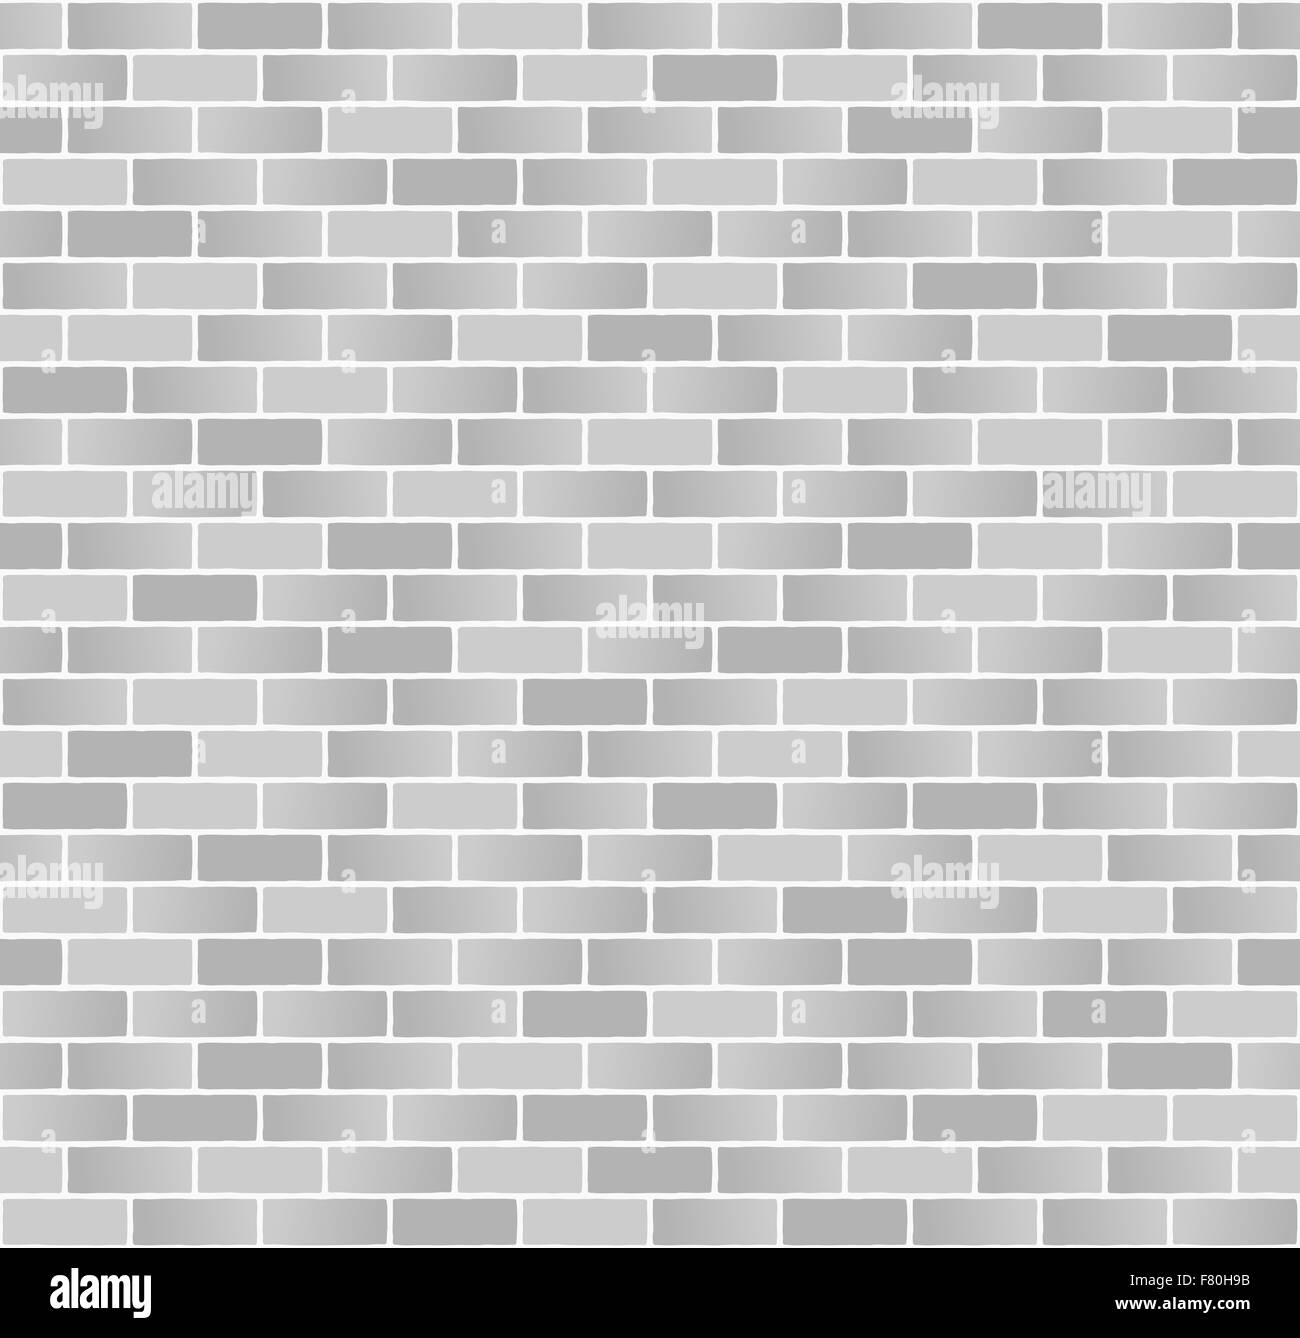 Seamless monochrome brick wall pattern of varied shades on white mortar background. - Stock Image